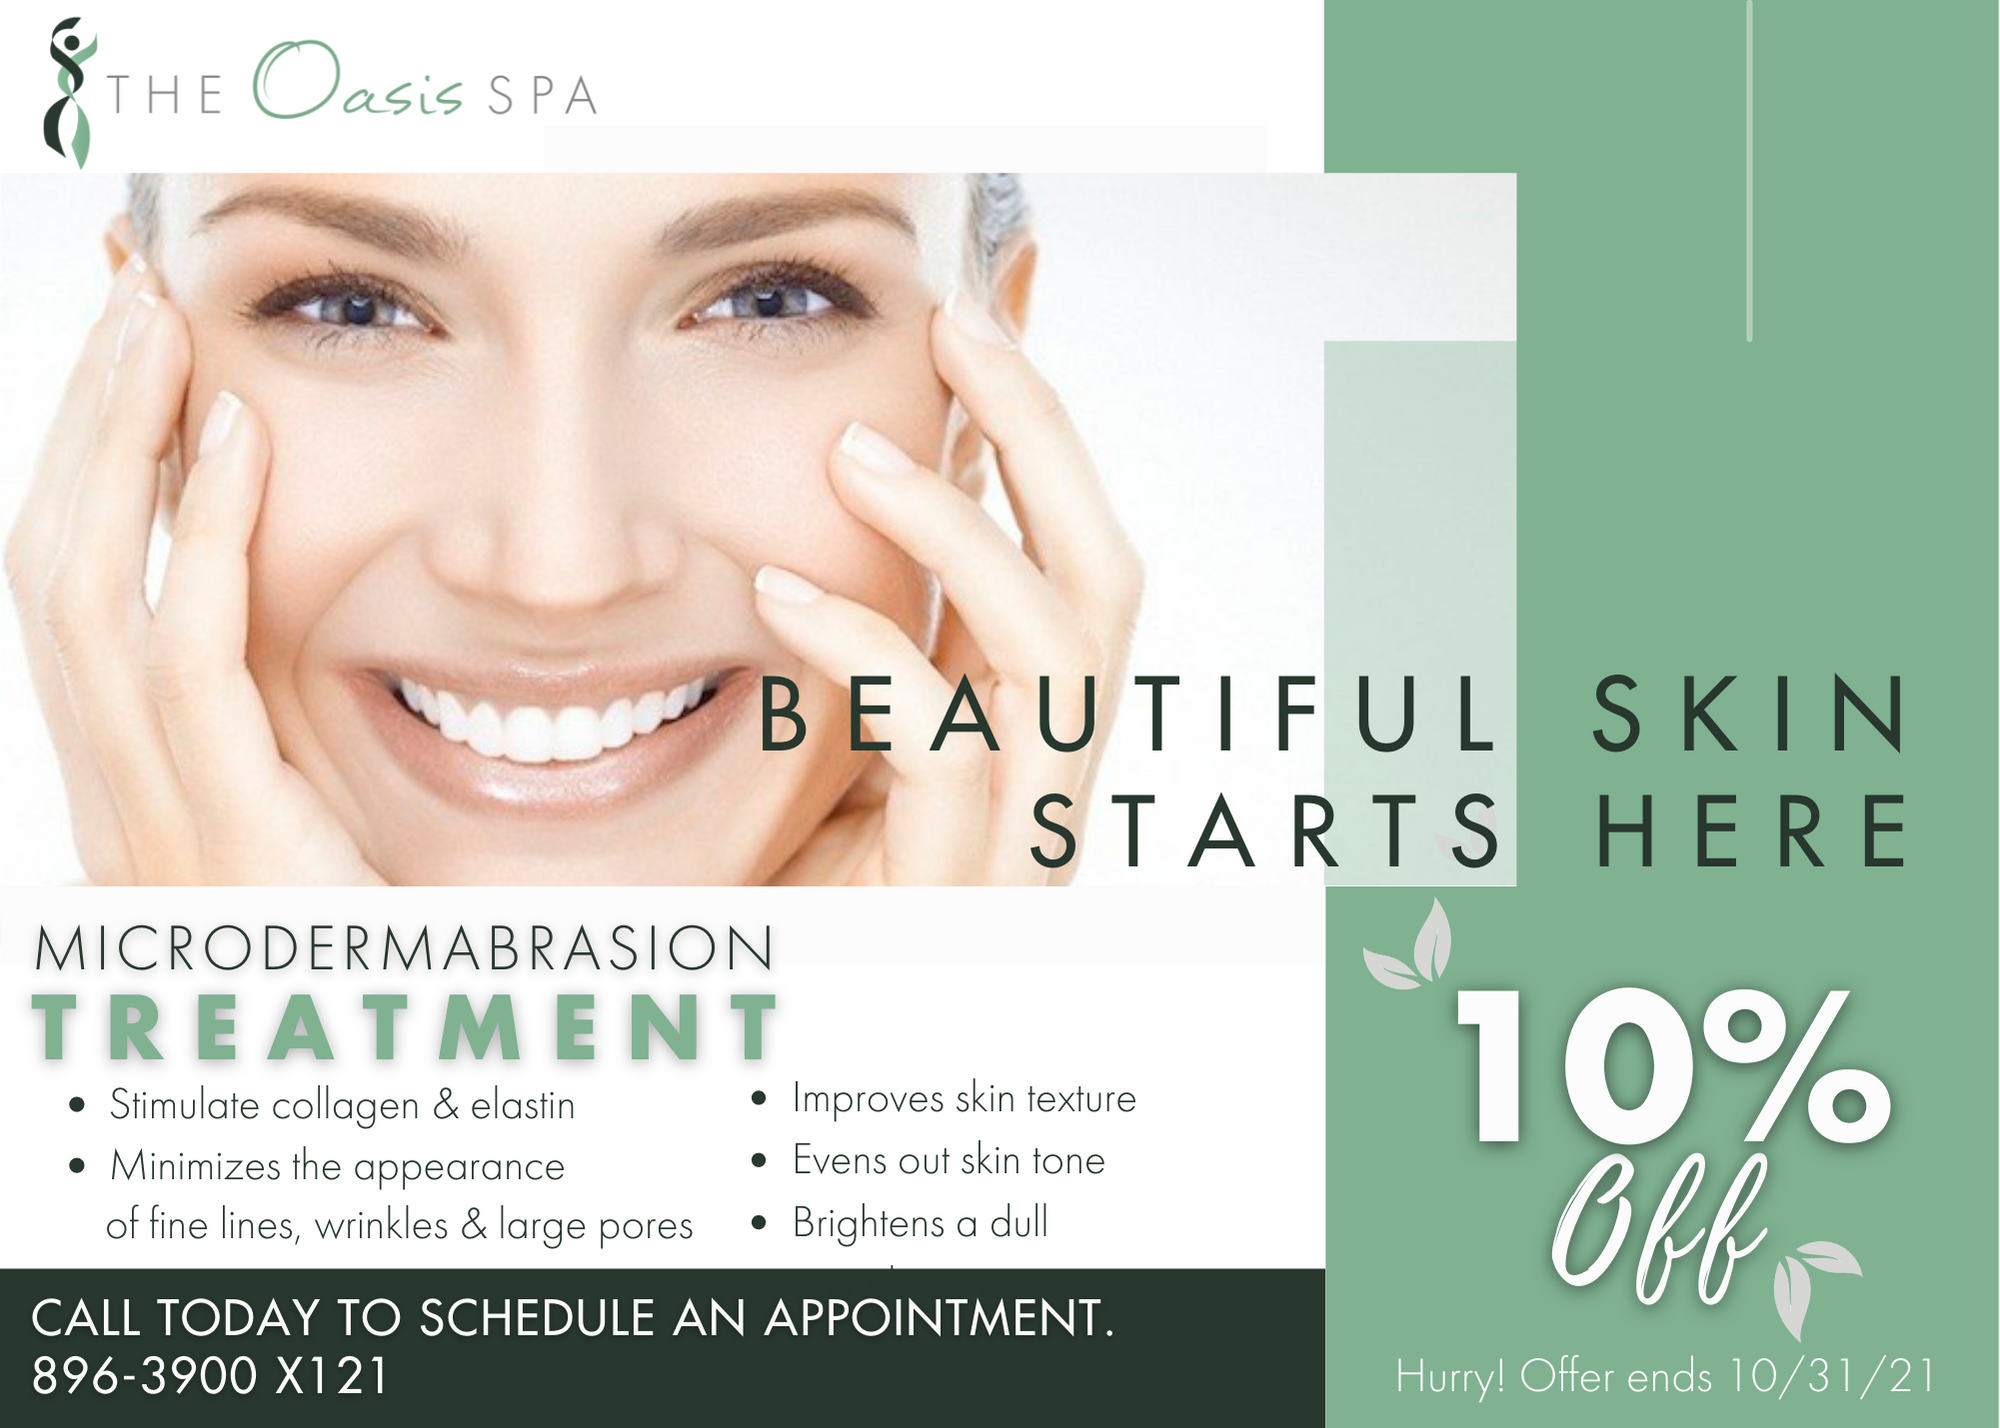 OASIS SPA OCT SPECIAL WEB